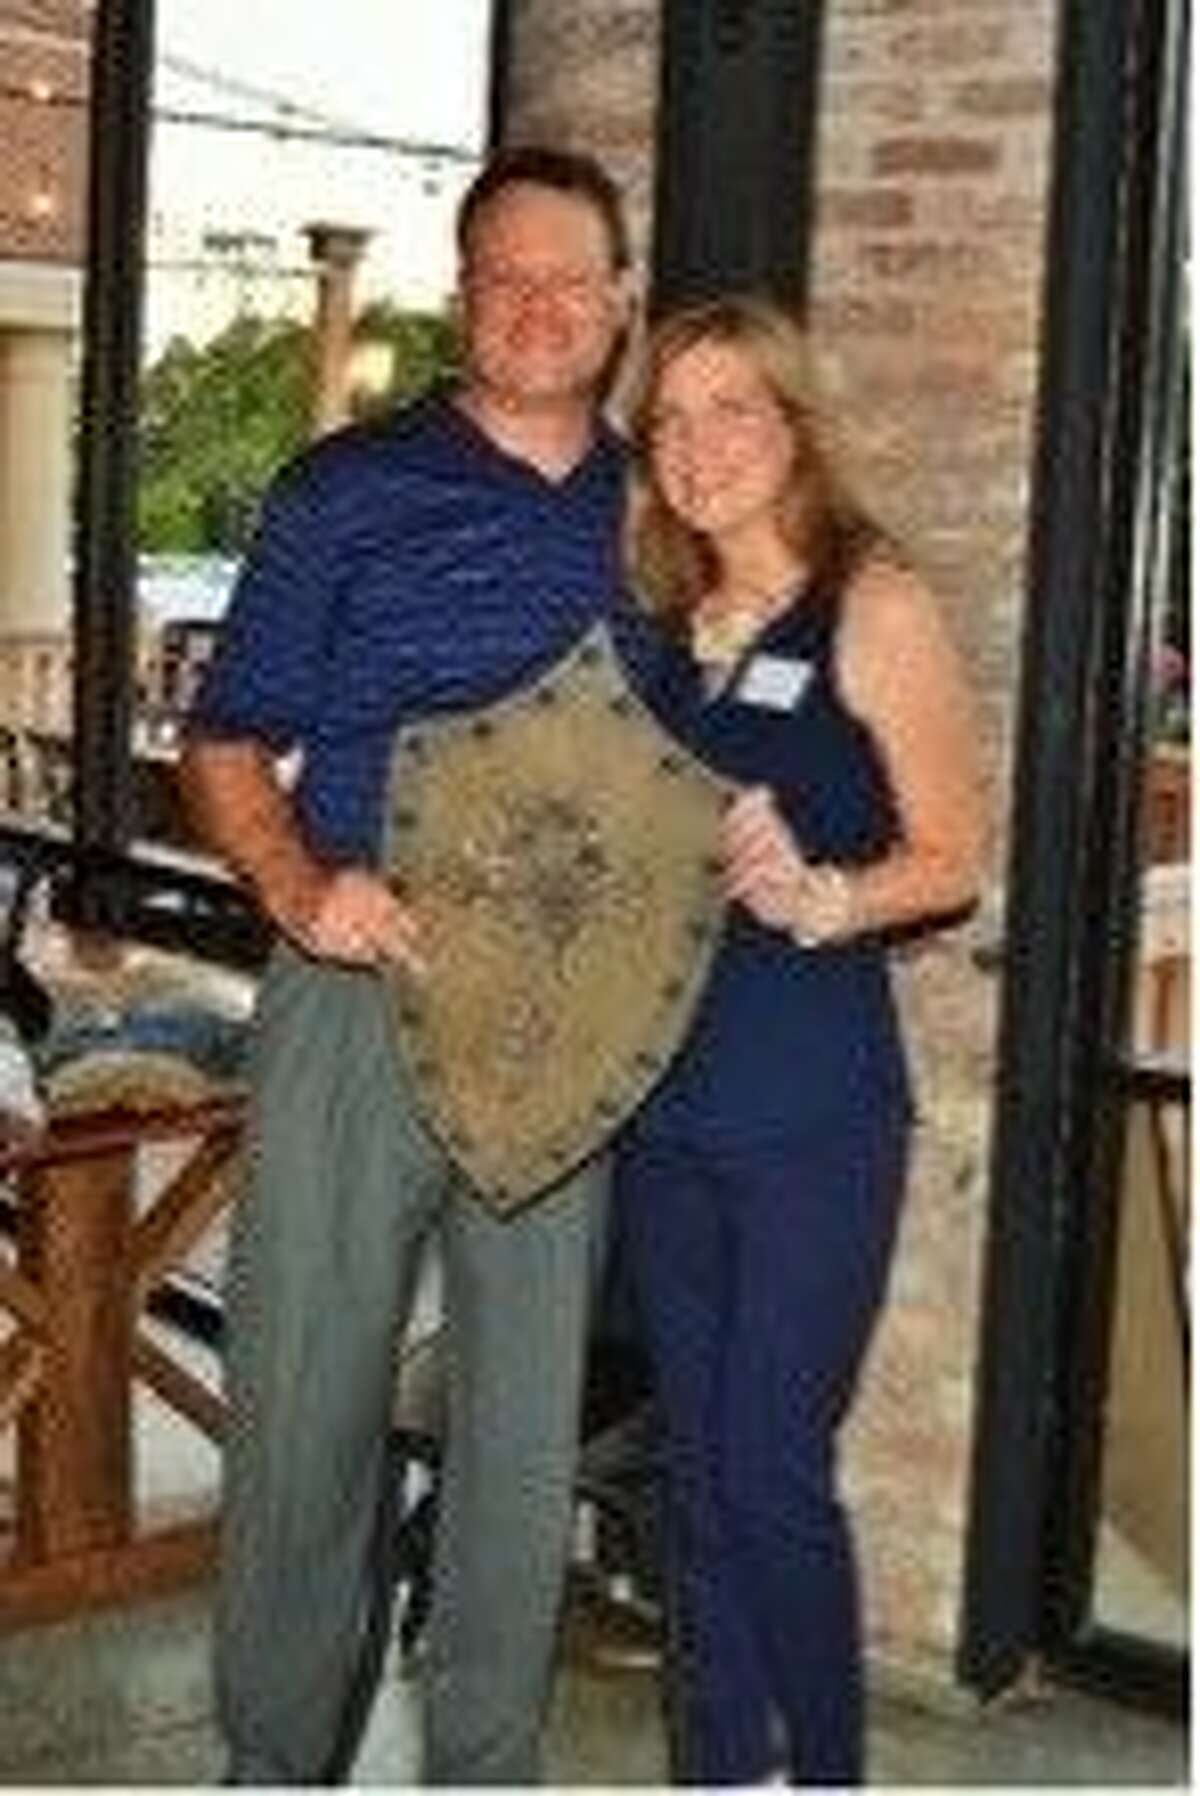 """Shield Bearer Associate Director Melissa Rotholz and husband Todd Rotholz, with the Shield Bearer """"Traveling Shield"""". The shield """"travels"""" from business to business each year as a symbol of the commitment to fighting for hearts in the community."""